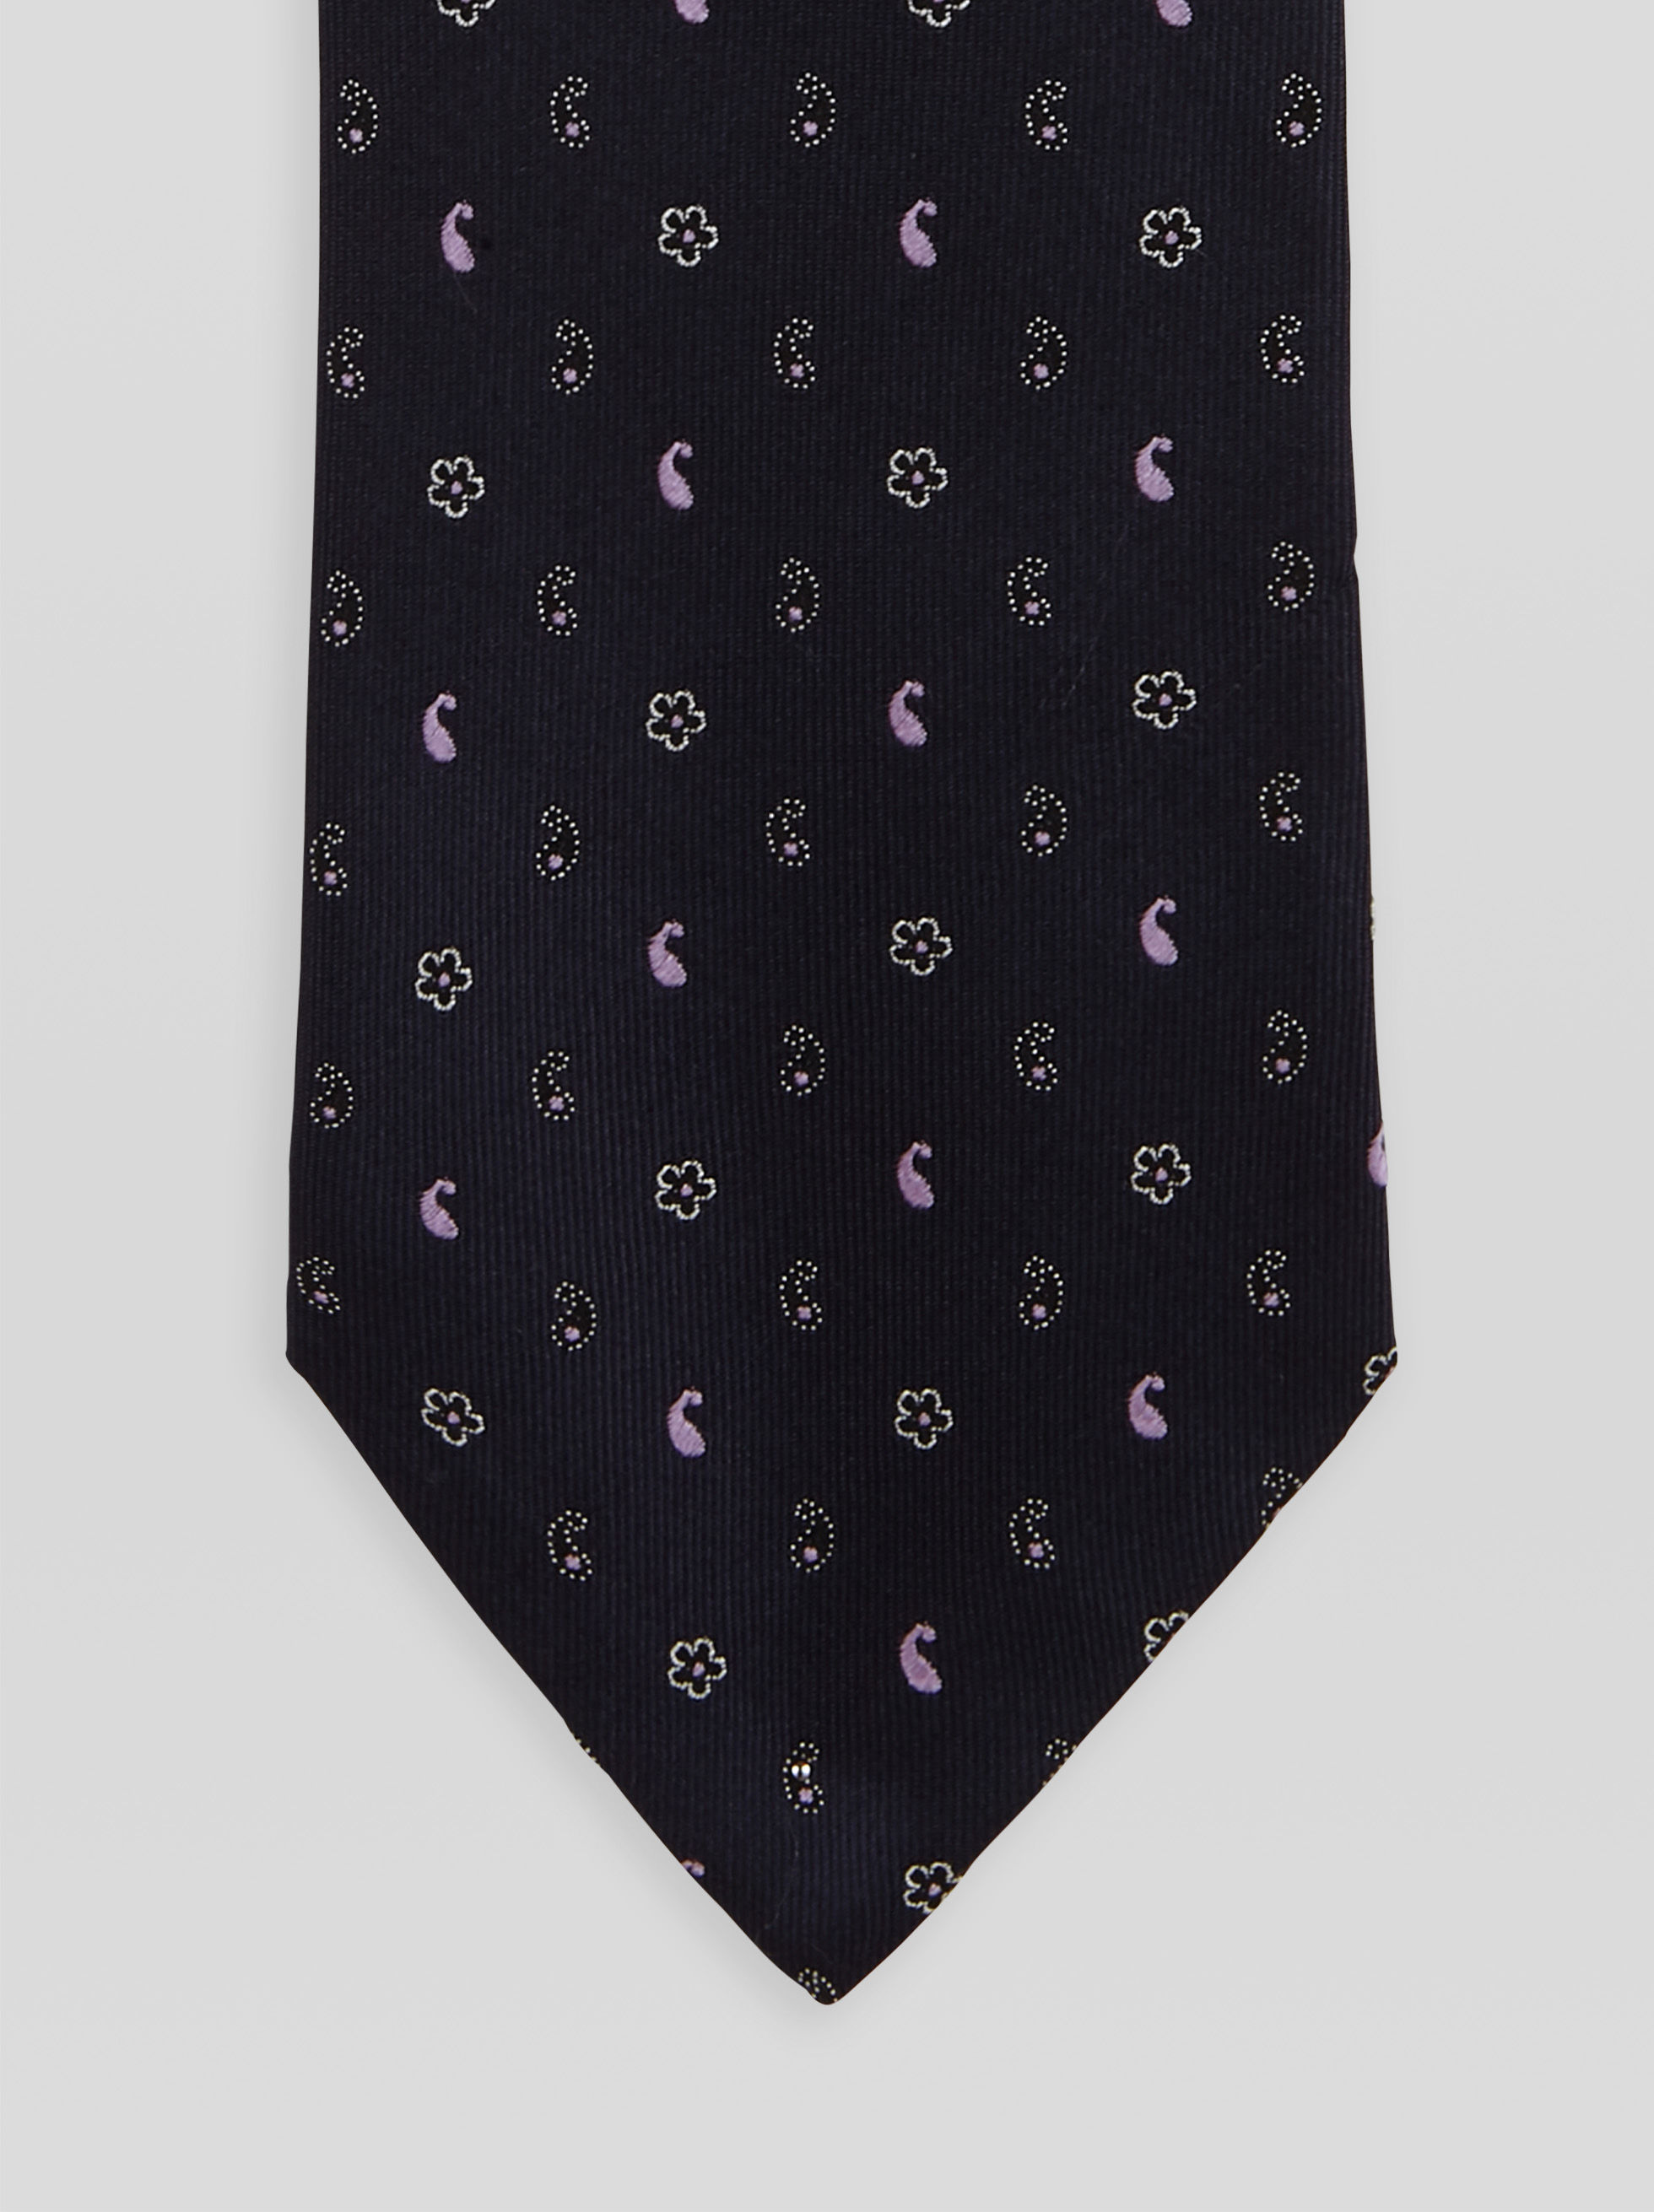 FLORAL AND PAISLEY PATTERN JACQUARD TIE